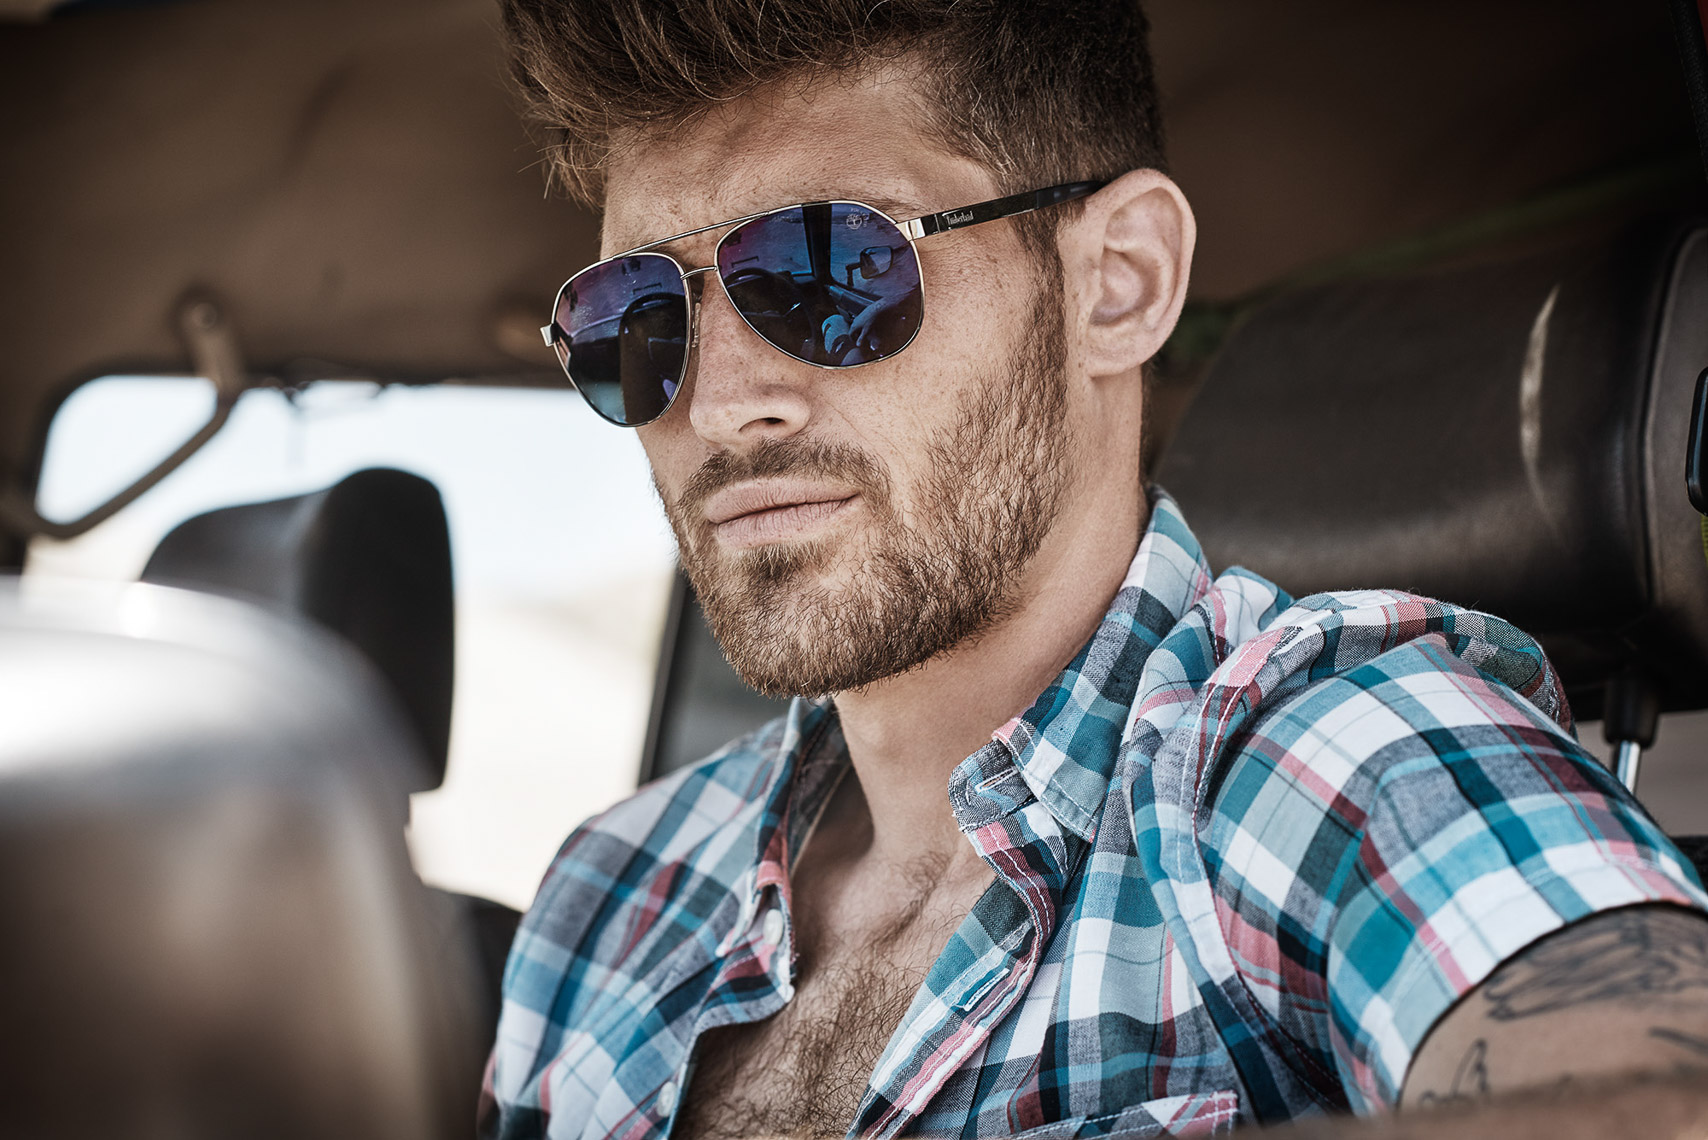 philip_closeupsunglasses_plaid_shirt_timberland